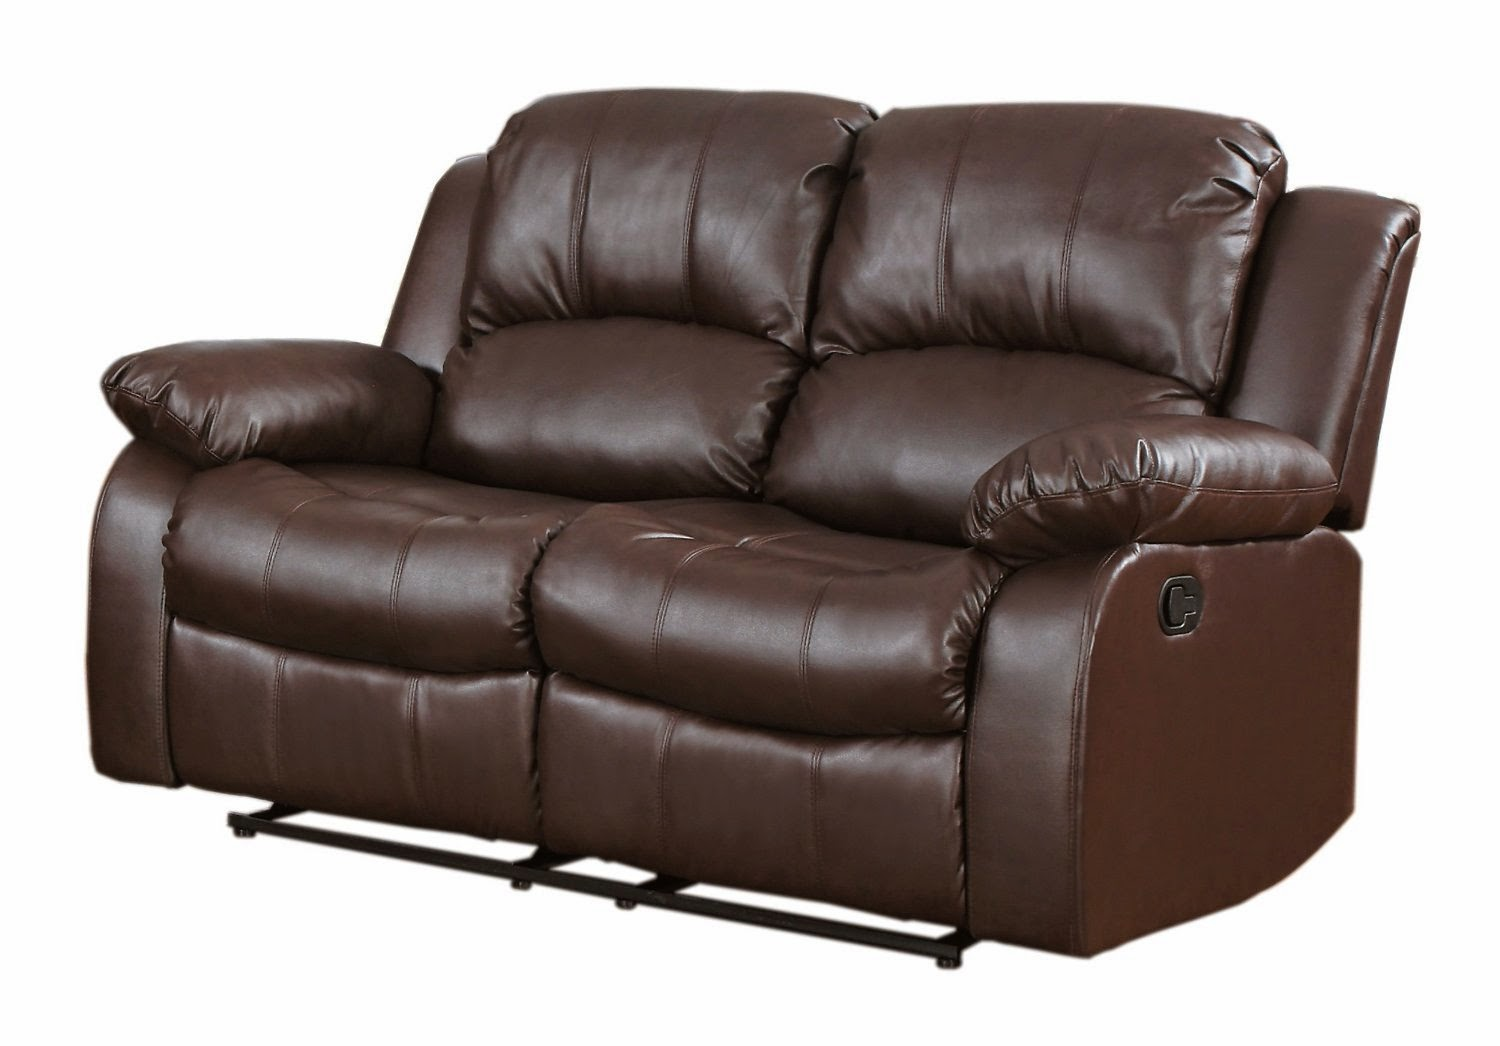 Place To Buy Recliner Sofa 2 Seater Electric Recliner Leather Sofa.  Furnishings ...